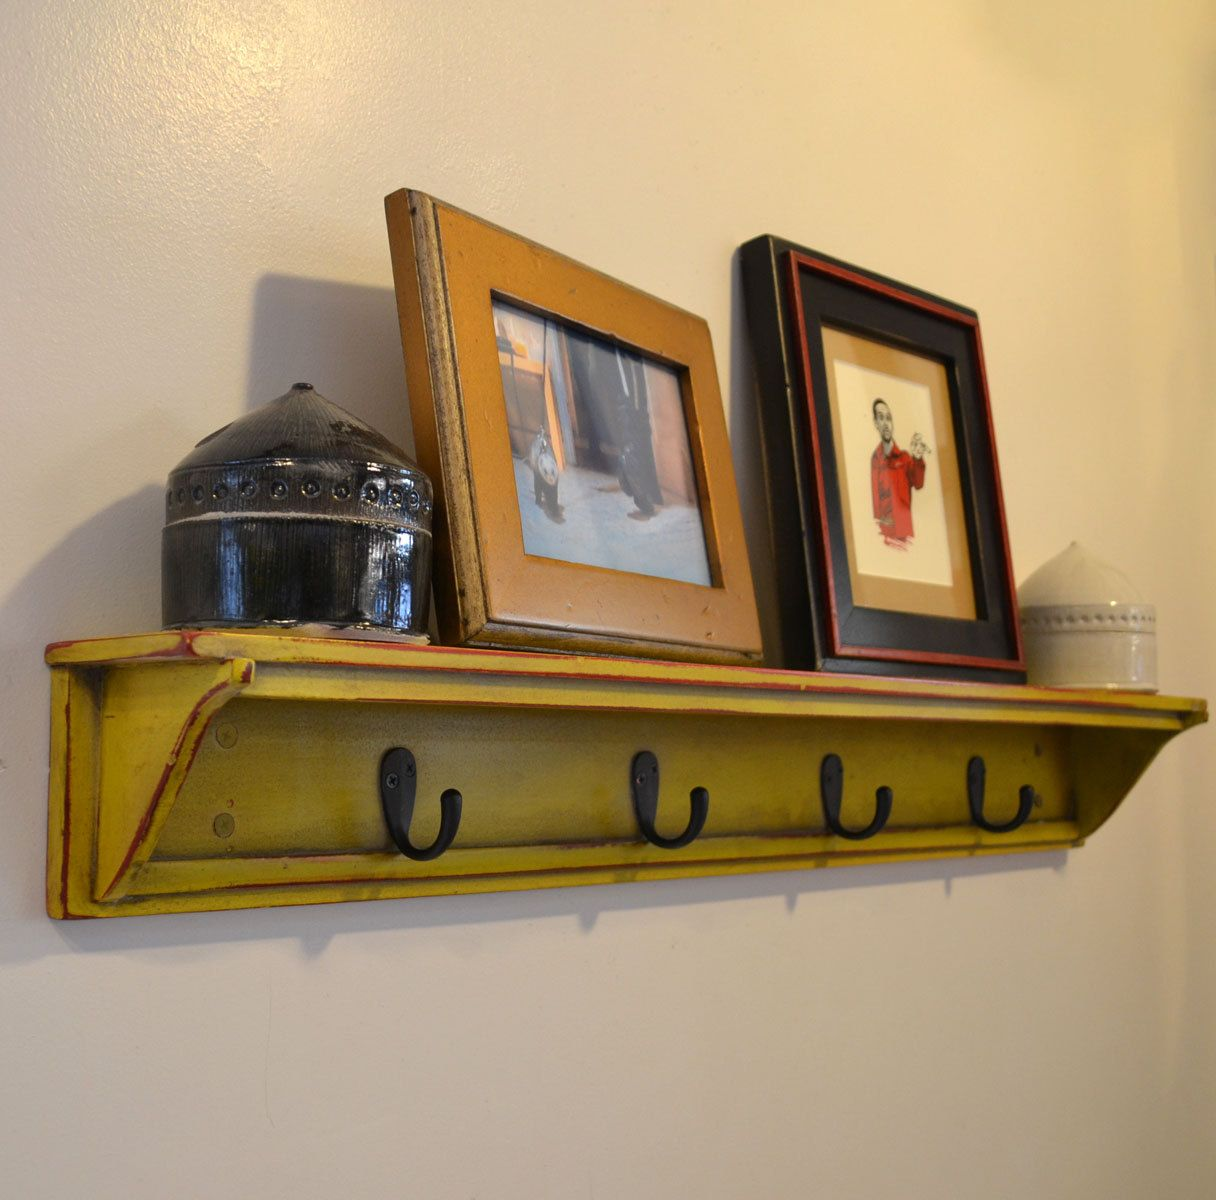 Handmade 30 Inch Long One Level Coat Rack Wall Shelf In Color Of Your Choice Wooden Mounted With Hooks Can Be Customized